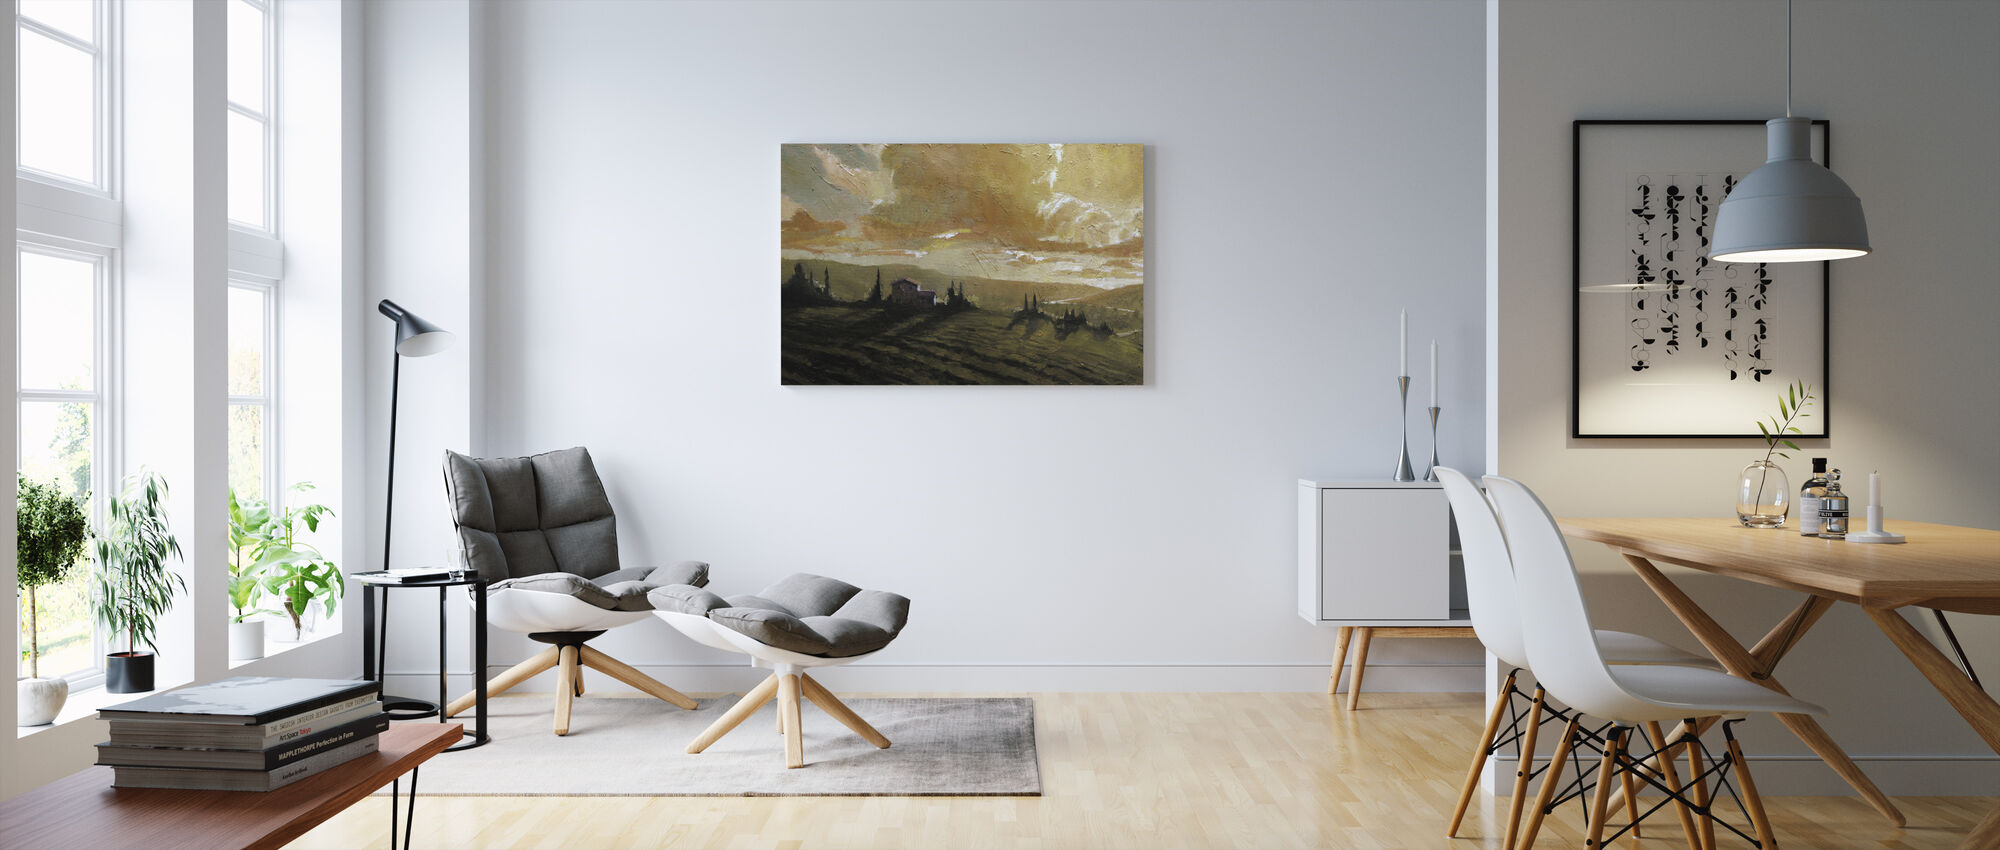 Tuscan Glow - Canvas print - Living Room